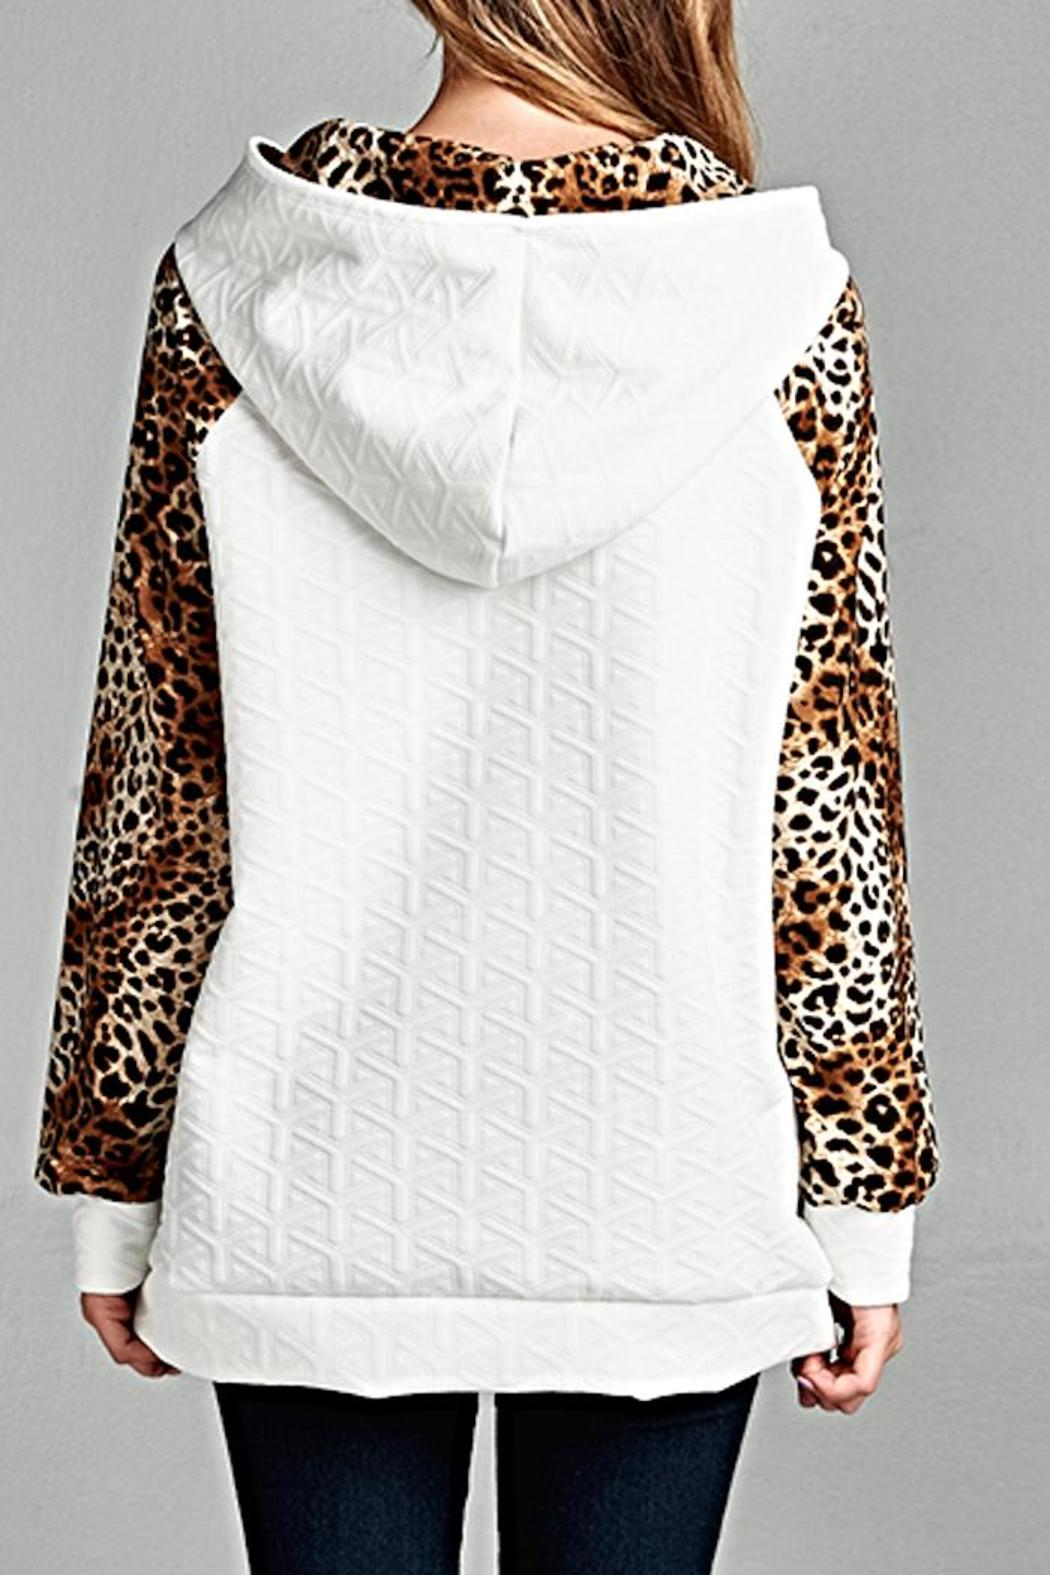 693efb1e1960 Michele Snow Leopard Hoodie from Louisiana by MICHELE — Shoptiques